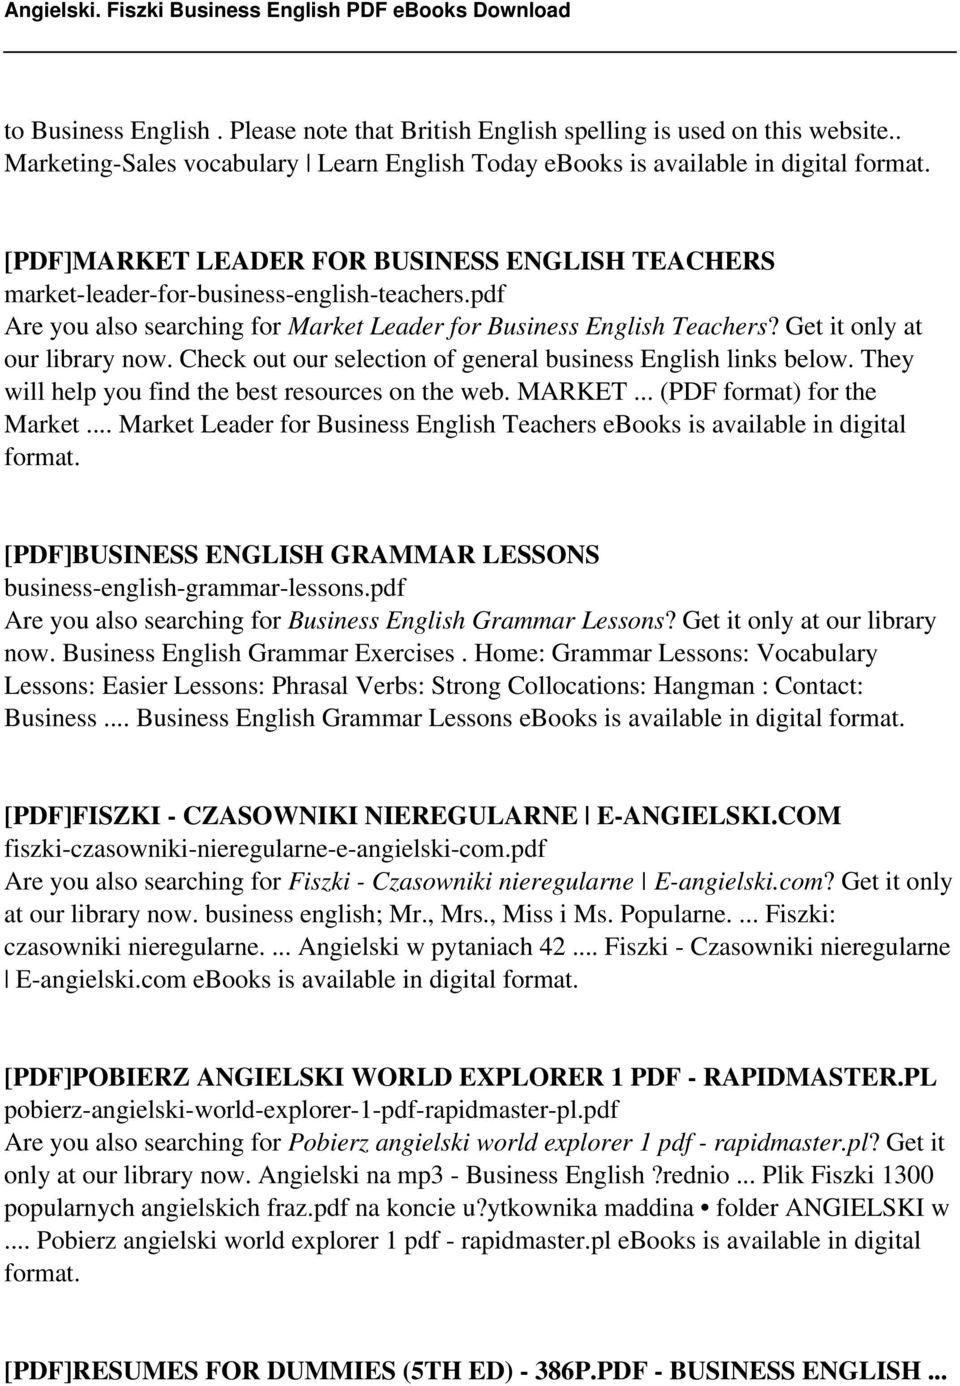 pdf Are you also searching for Market Leader for Business English Teachers? Get it only at our library now. Check out our selection of general business English links below.